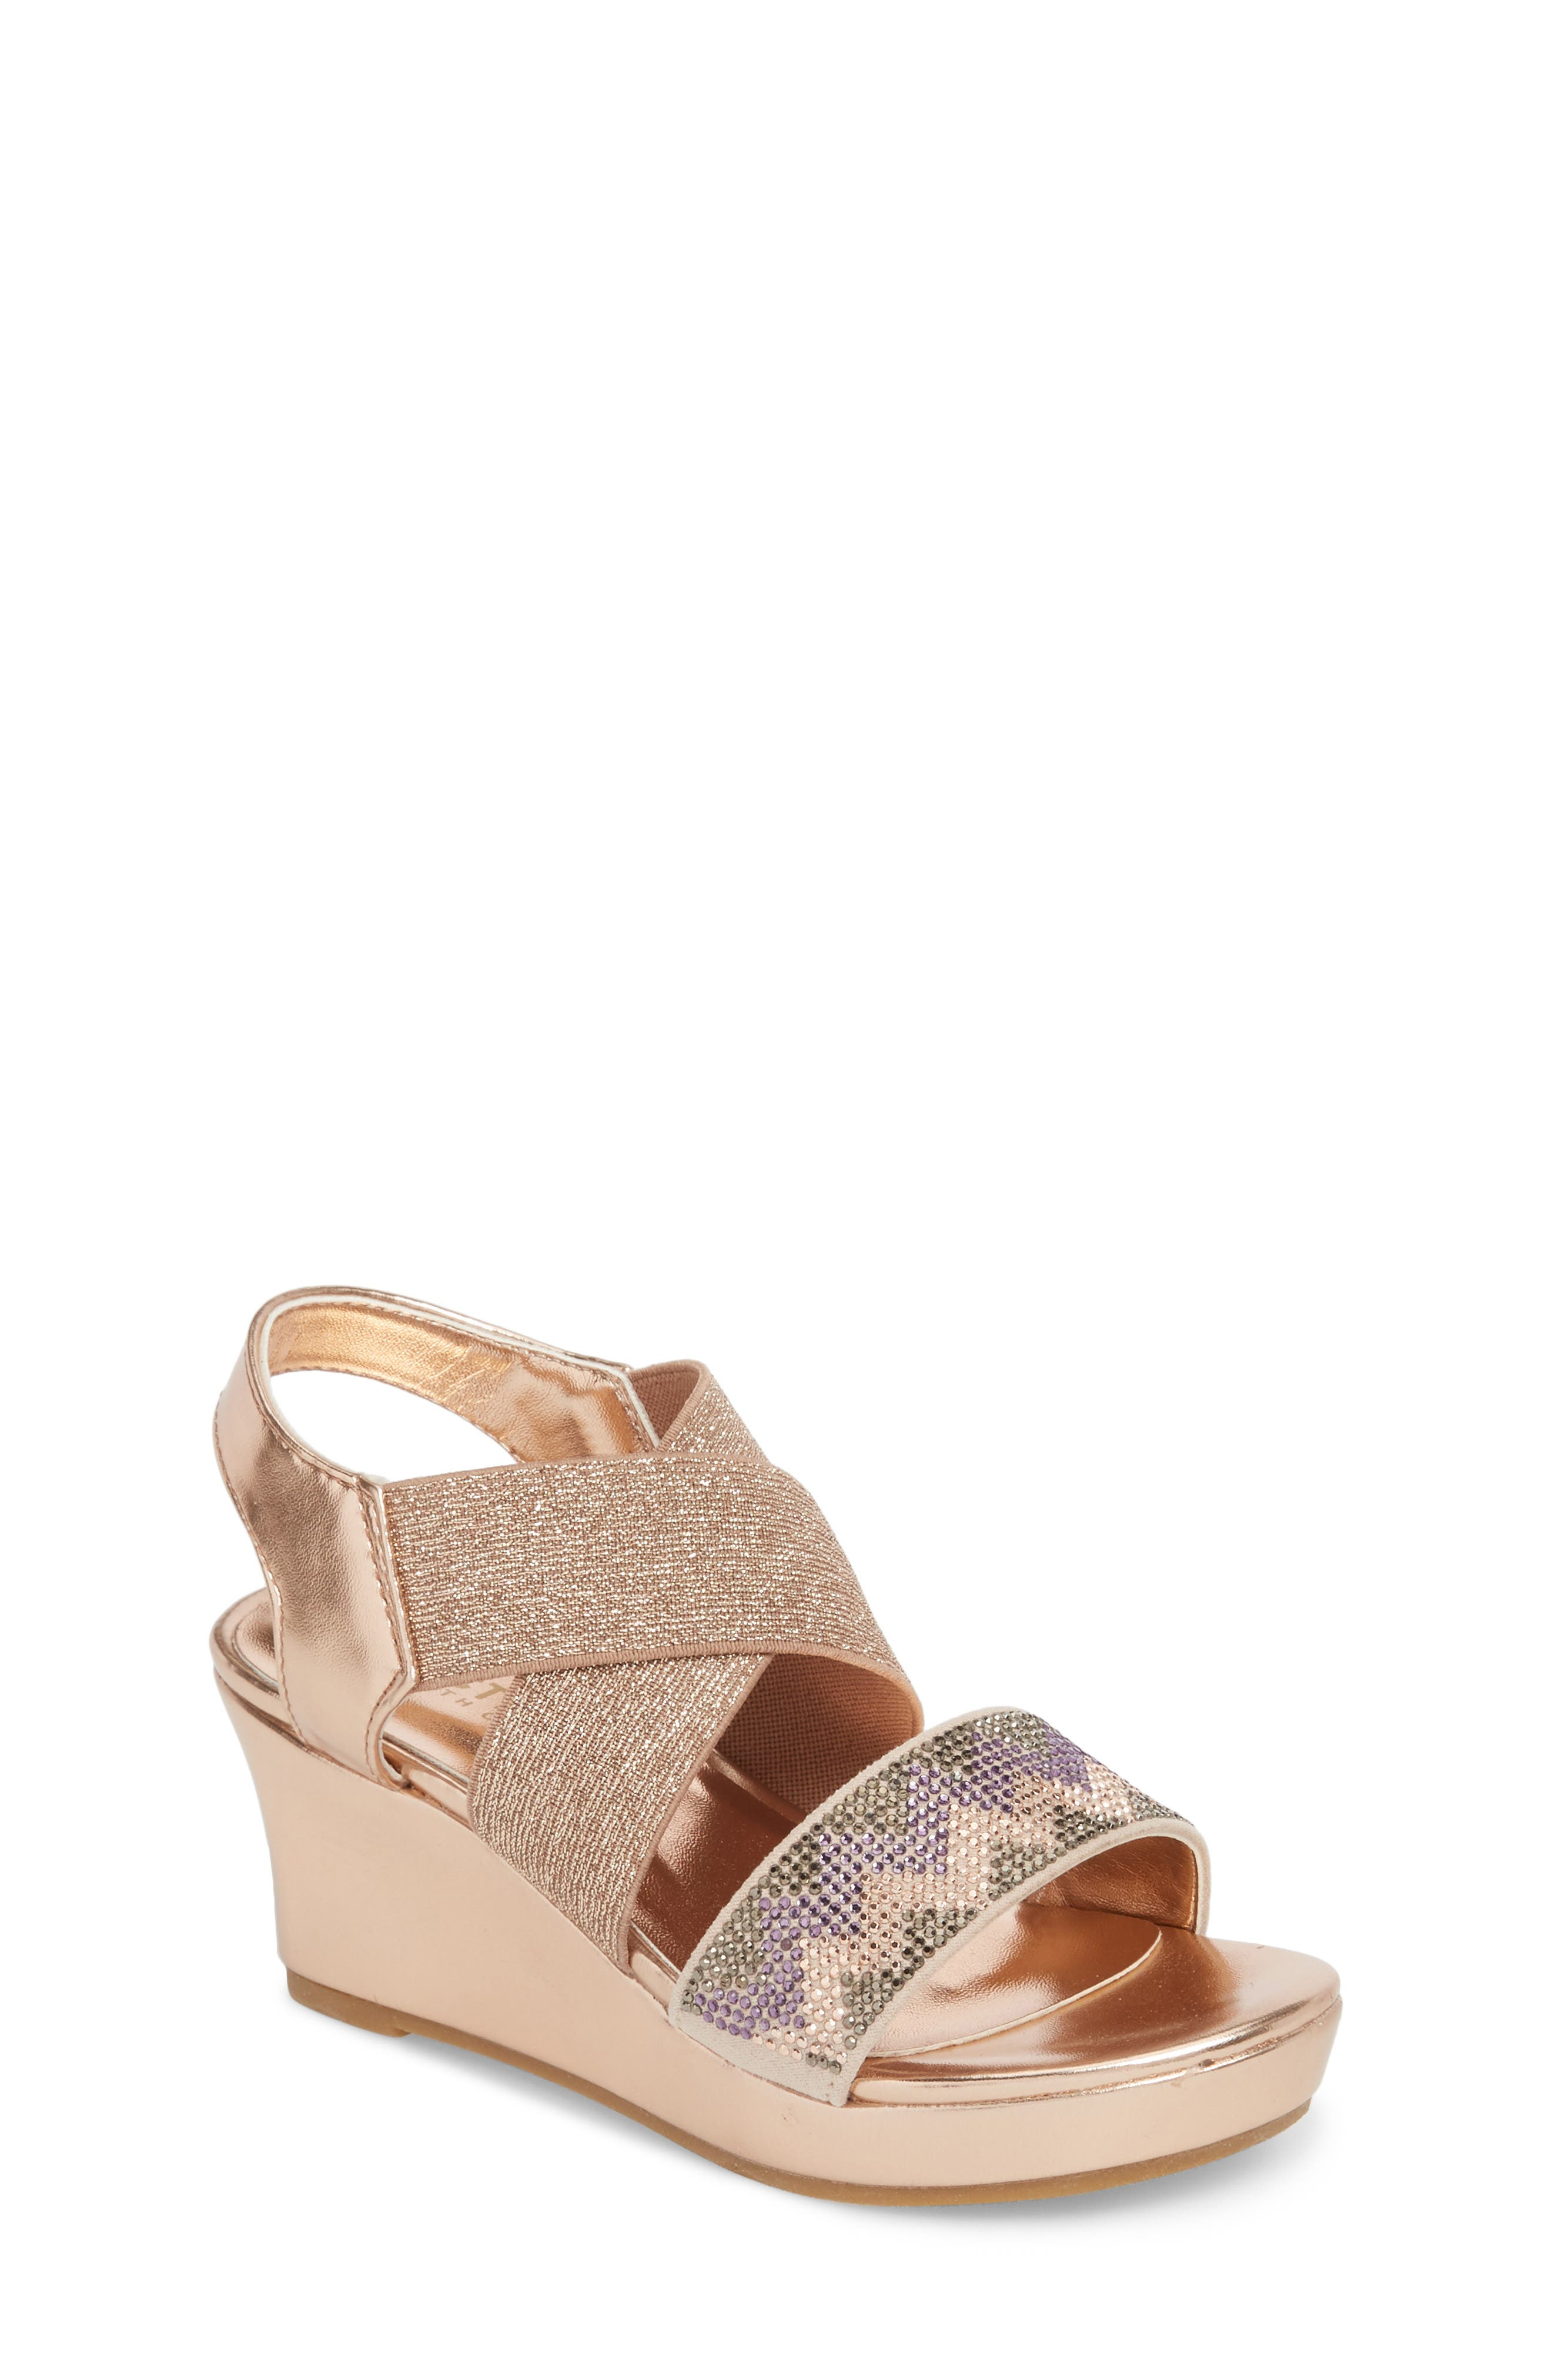 Reaction Kenneth Cole Reed Mamba Embellished Wedge Sandal,                             Main thumbnail 1, color,                             Rose Metallic